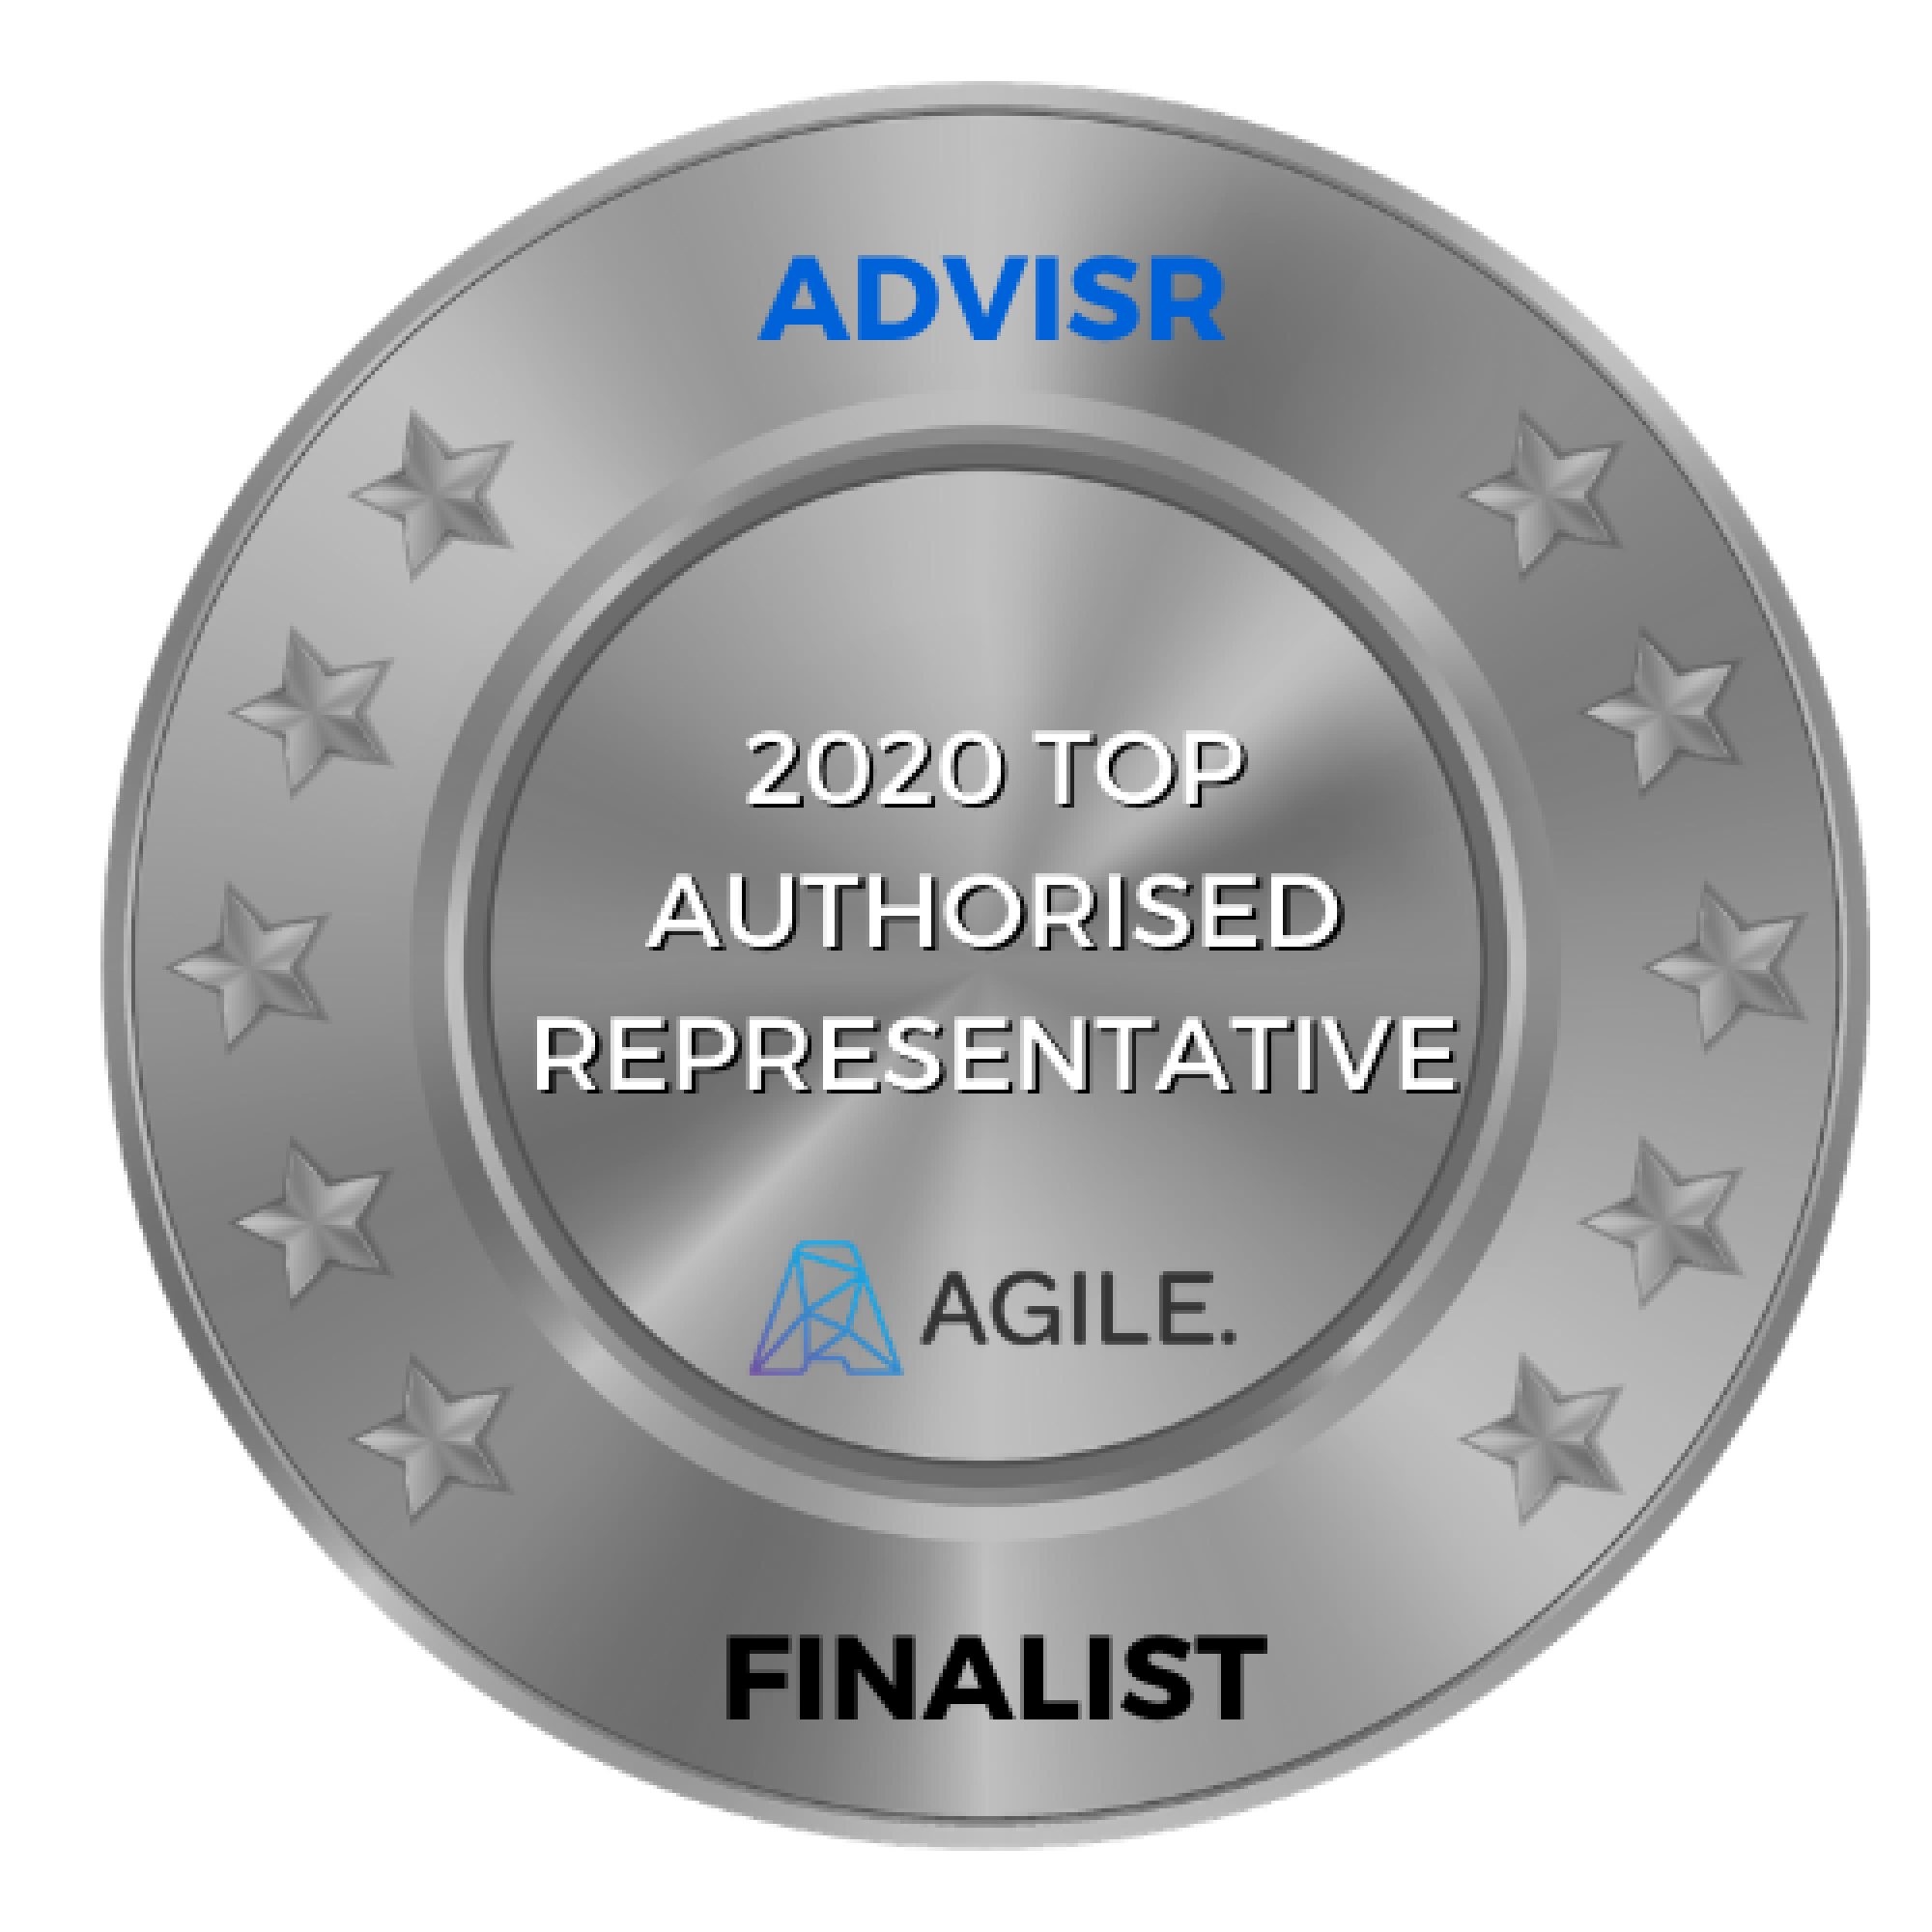 Advisr Insurance Broker Awards 2020 Finalist | Top Authorised Representative